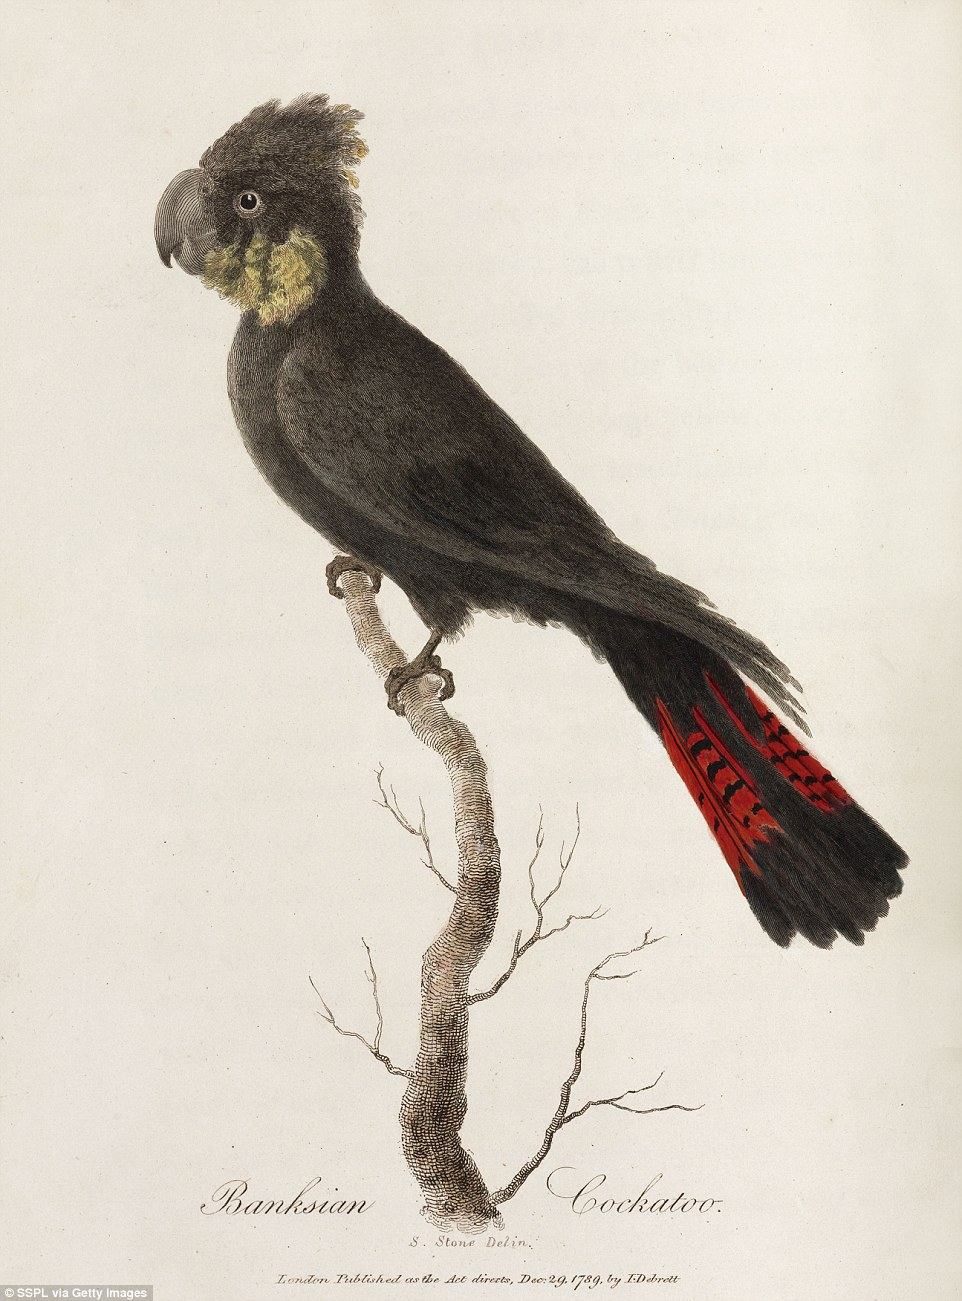 Australian Animals Drawings Fascinating Drawings From 1790 Capture Australia S Wildlife